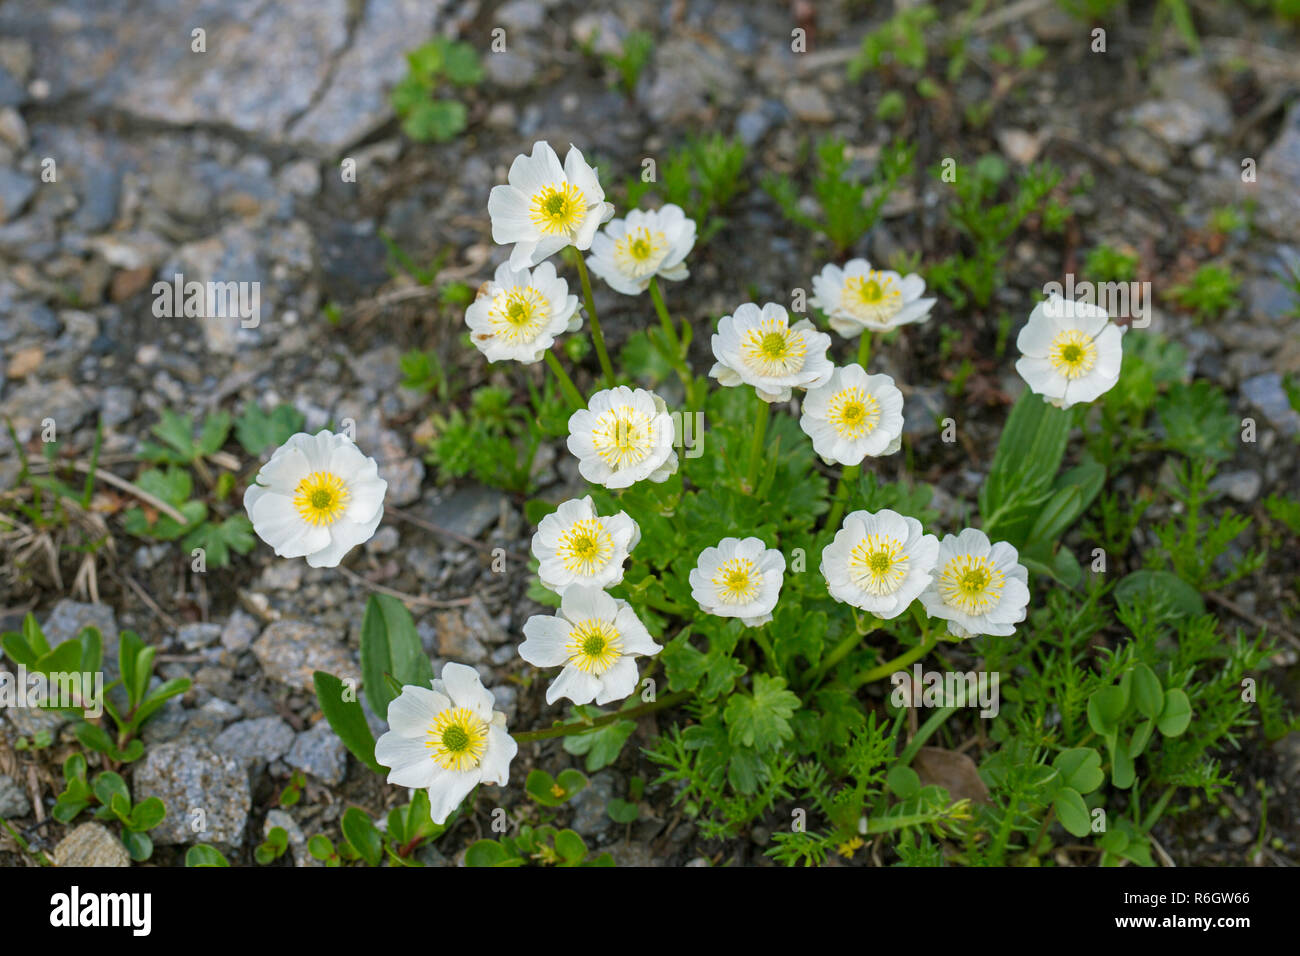 Alpine crowfoot / Alpine buttercup (Ranunculus alpestris) flowers in summer, native to the Alps, Pyrenees, Carpathian Mountains, and Apennines - Stock Image